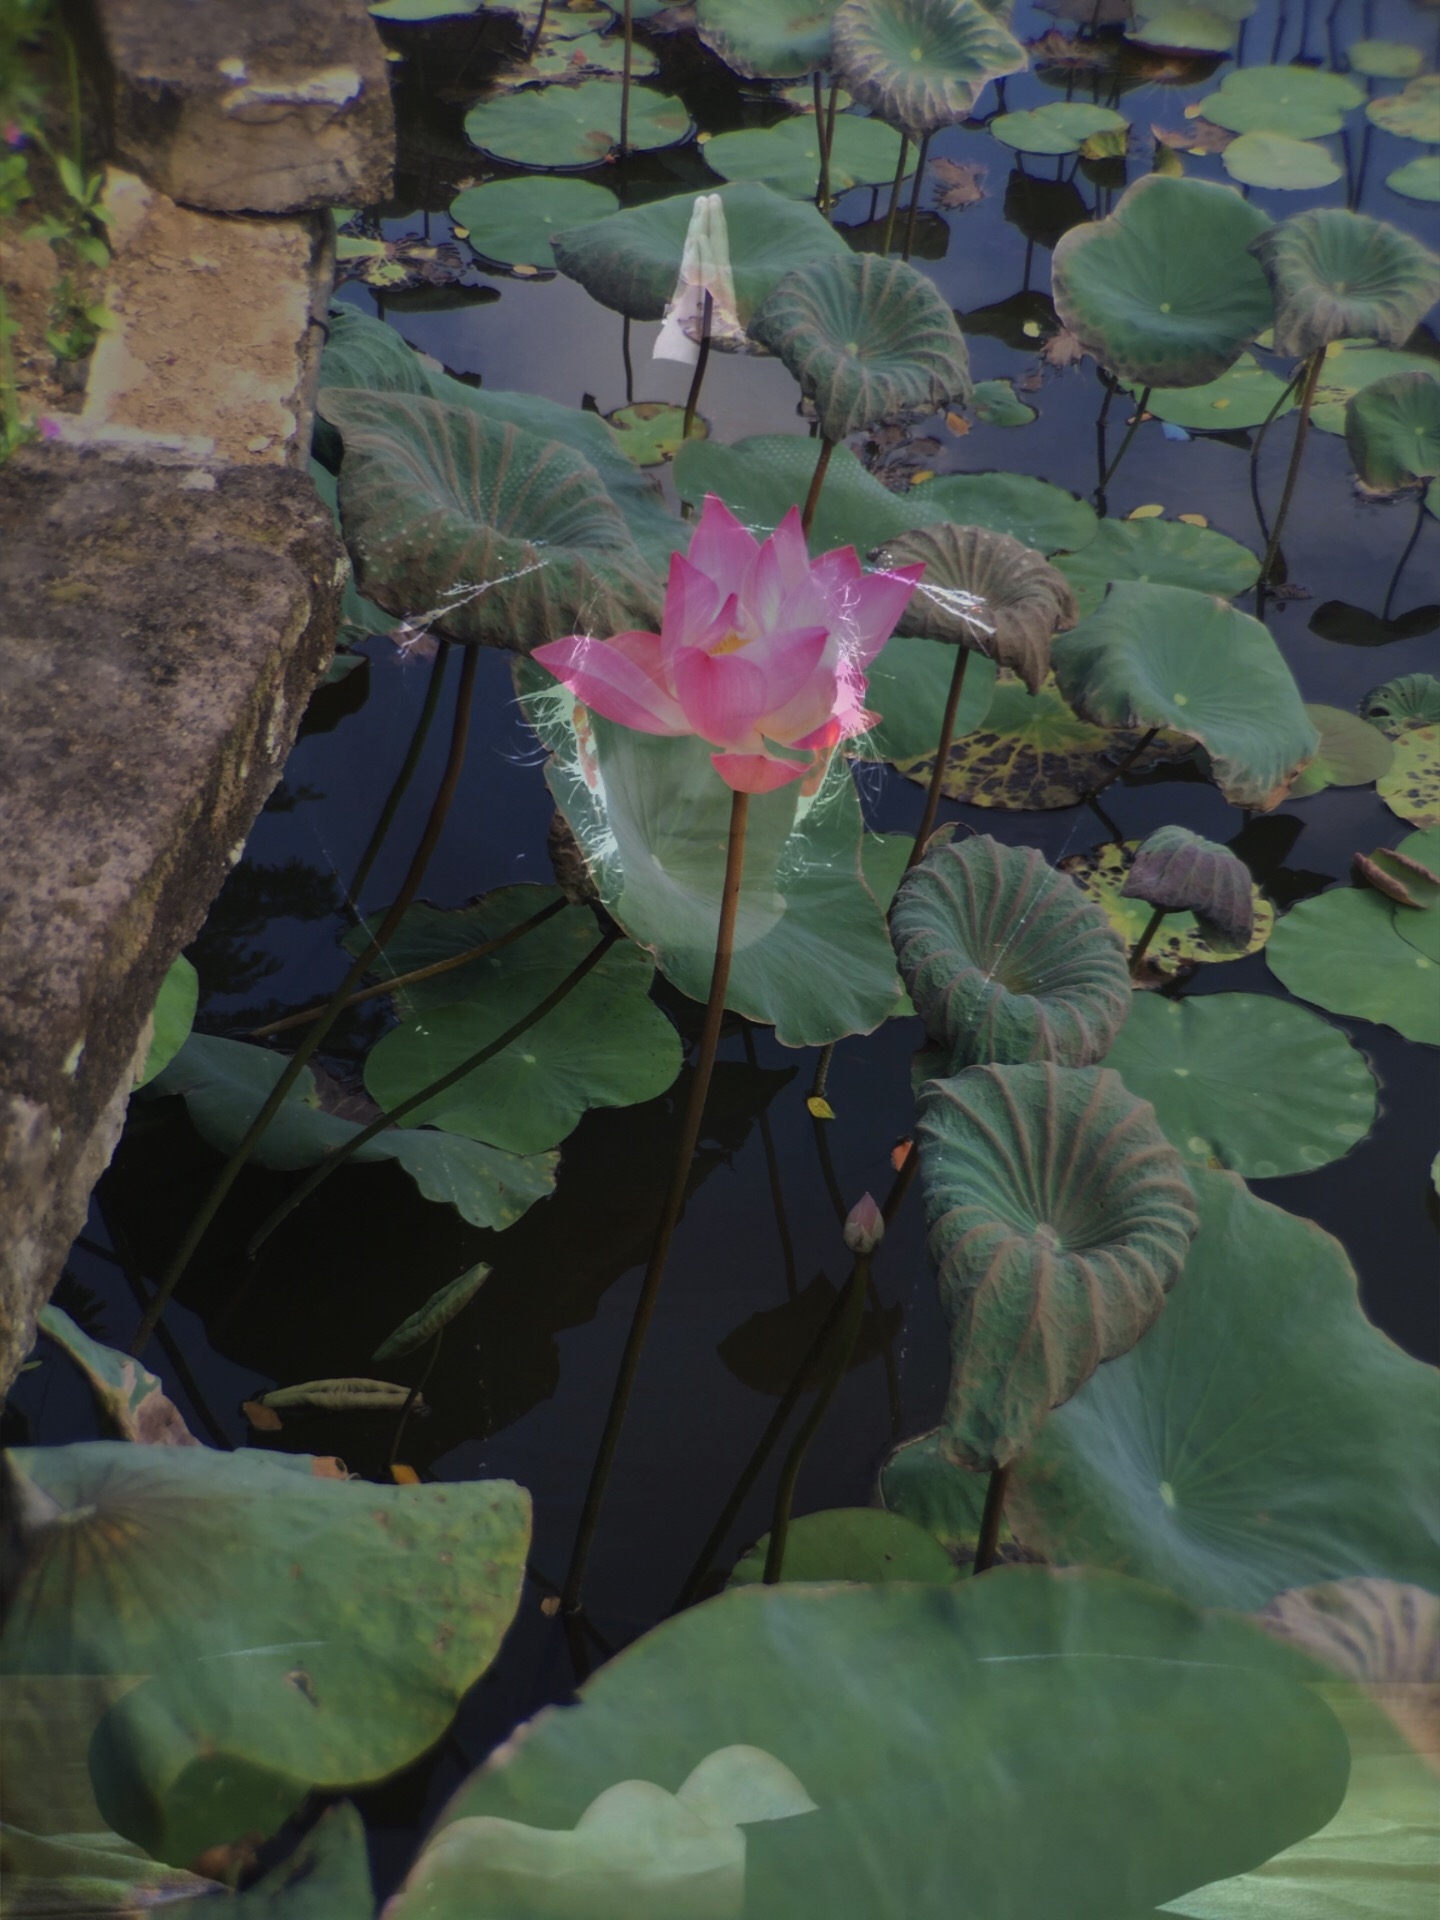 Credit: Mine. Lotus in Ubud, Bali, and me, by Federico Garcia C.